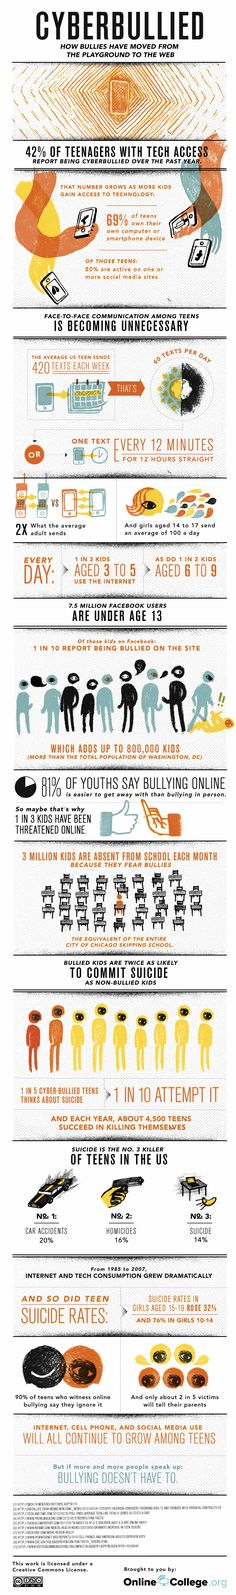 Social terror by technology: how to deal with online harassment and cyberbullies